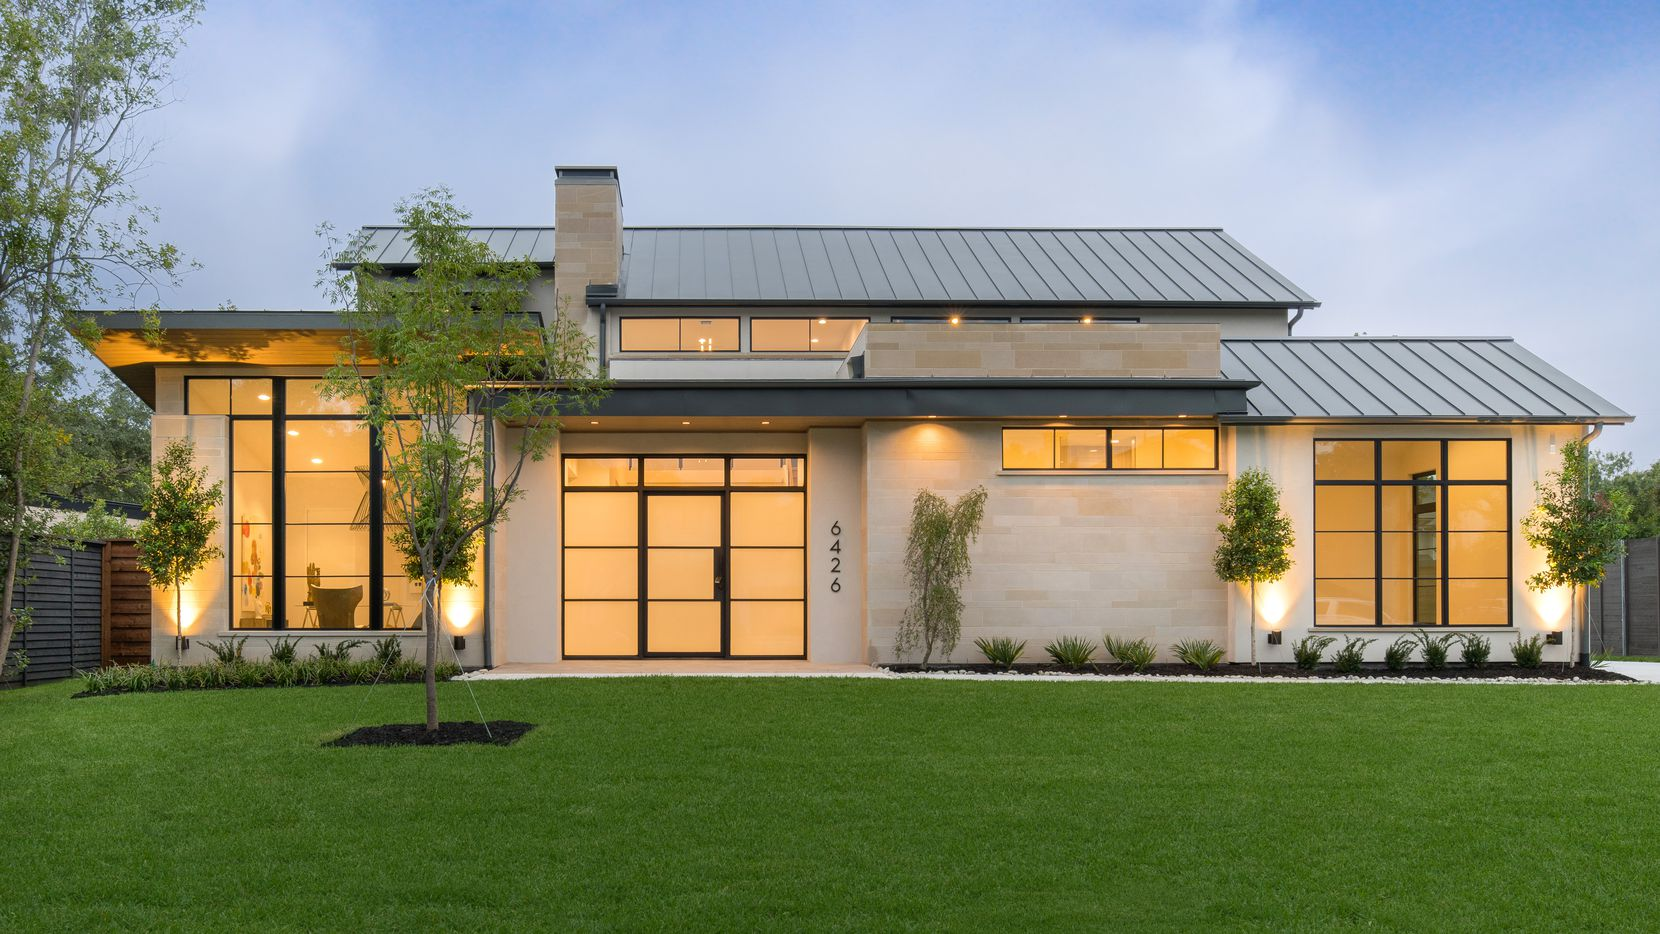 Take a look at the home at 6426 Azalea Lane in Dallas, TX.